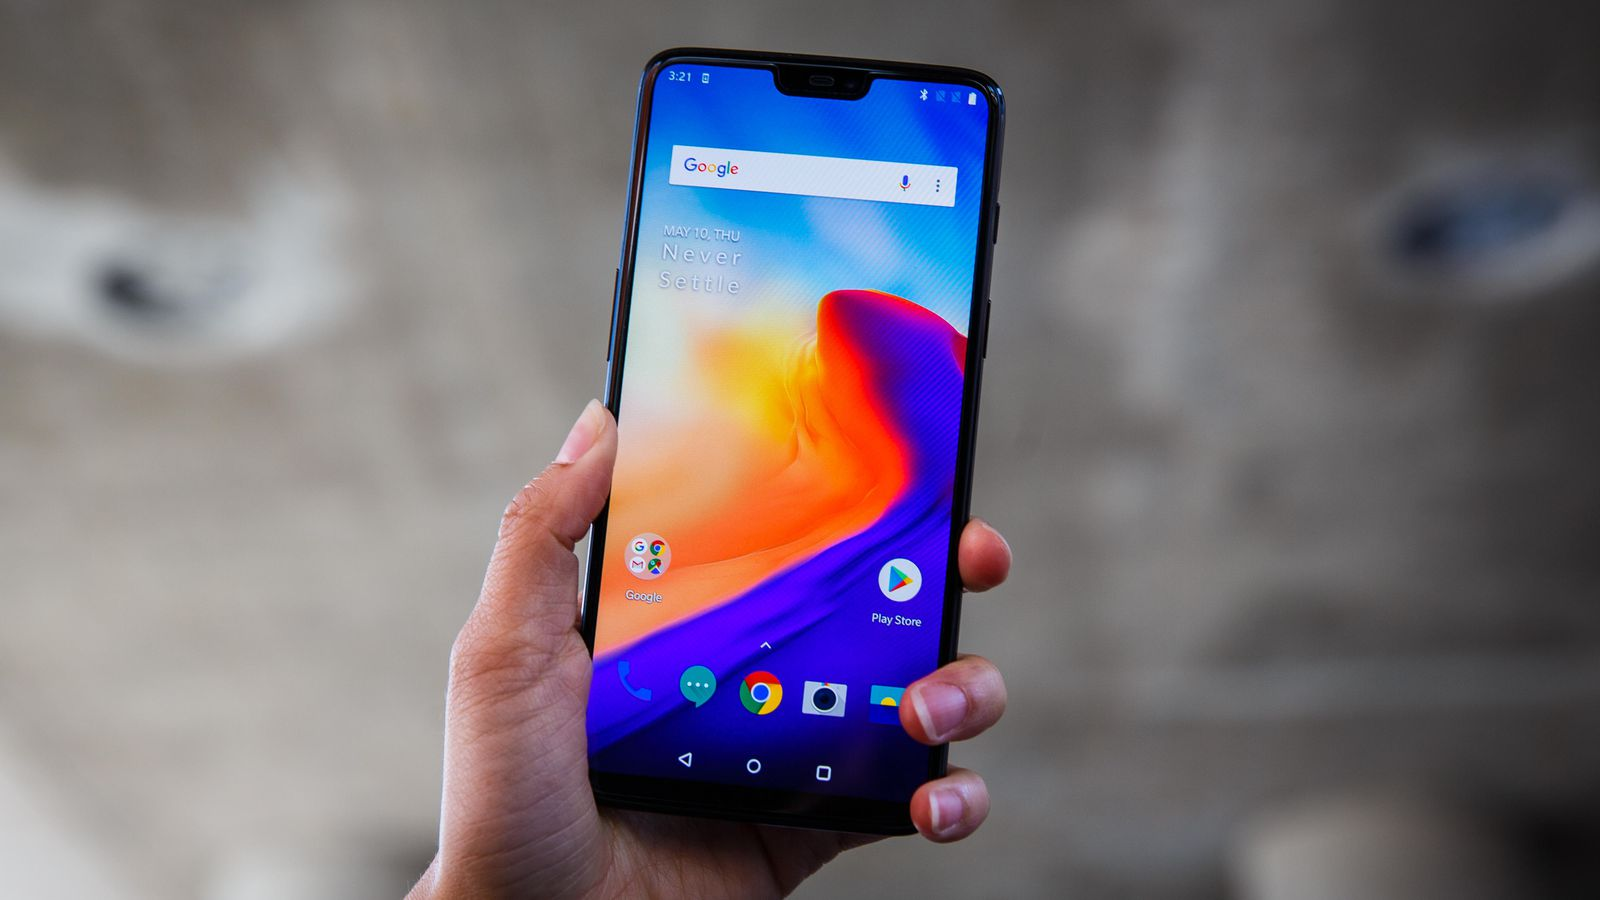 Everything You Need to Know About the New OnePlus 6 — Specs, Release Date, Pricing & More